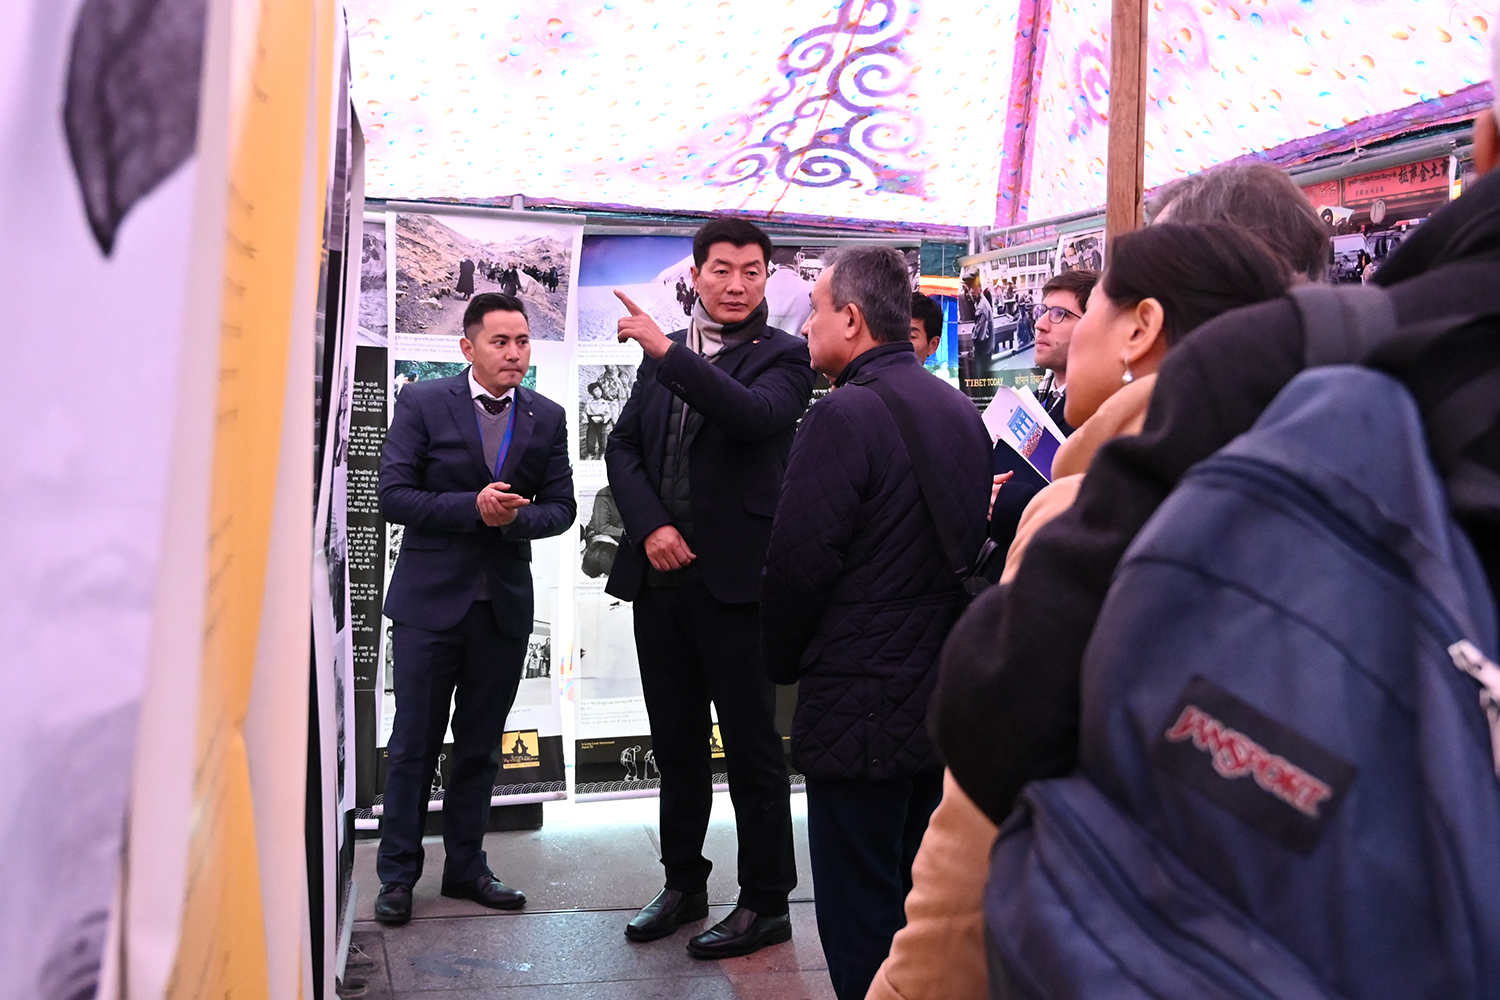 CTA President Dr Sangay explaining on an exhibition to Mr Carlo Sommaruga, Honorable member of the National Parliament of Switzerland along with 15 different speakers. Photo|Tenzin Nyishon|Switzerland